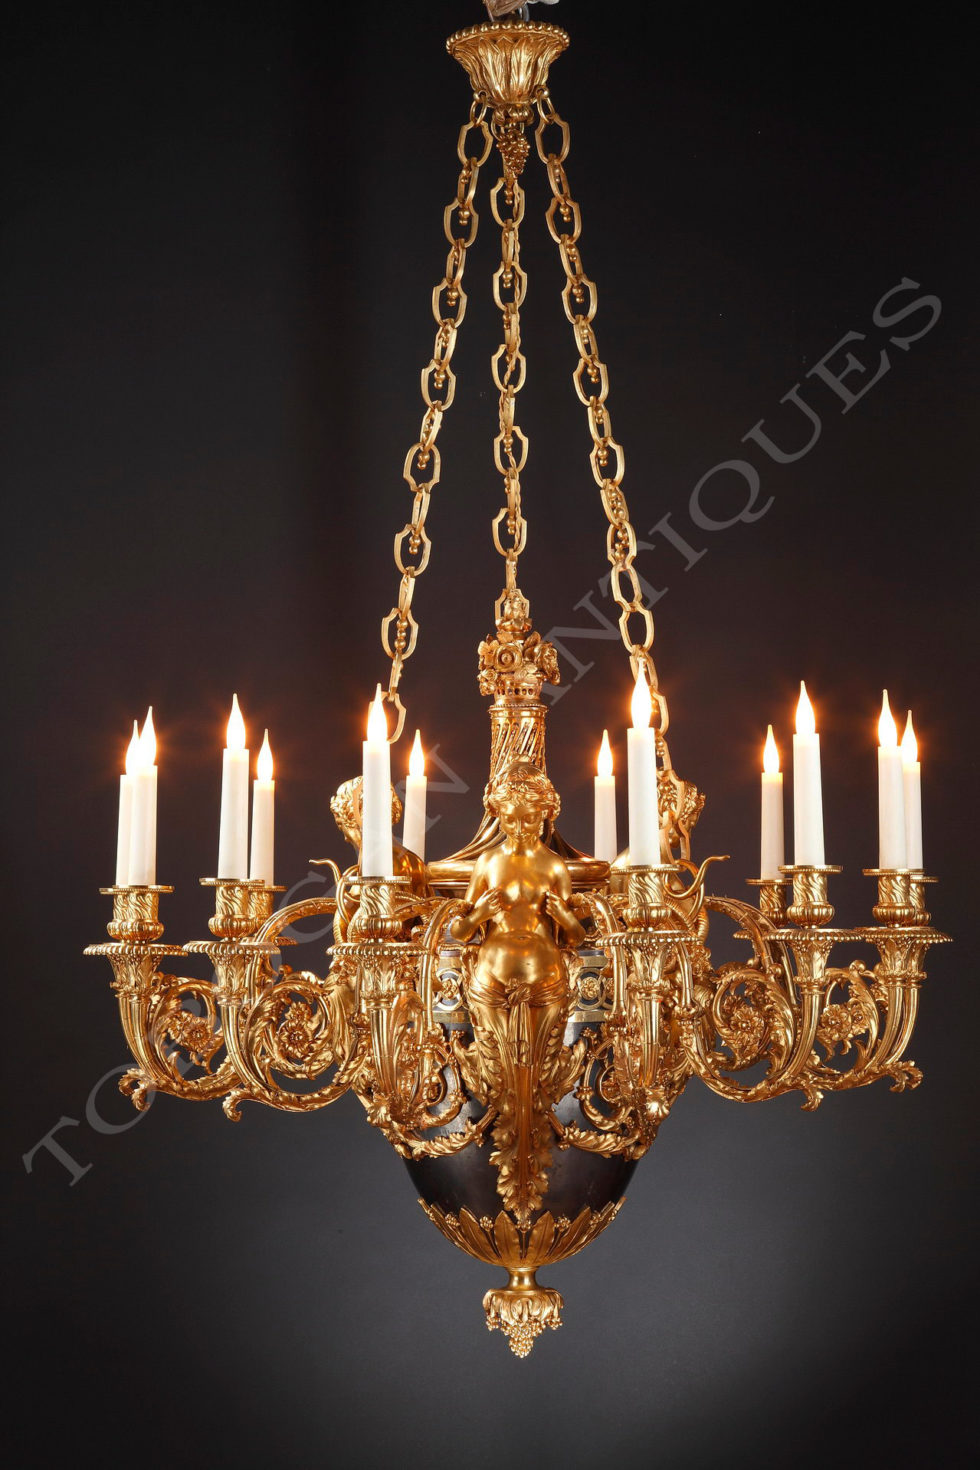 A.E. Beurdeley <br/> Important chandelier